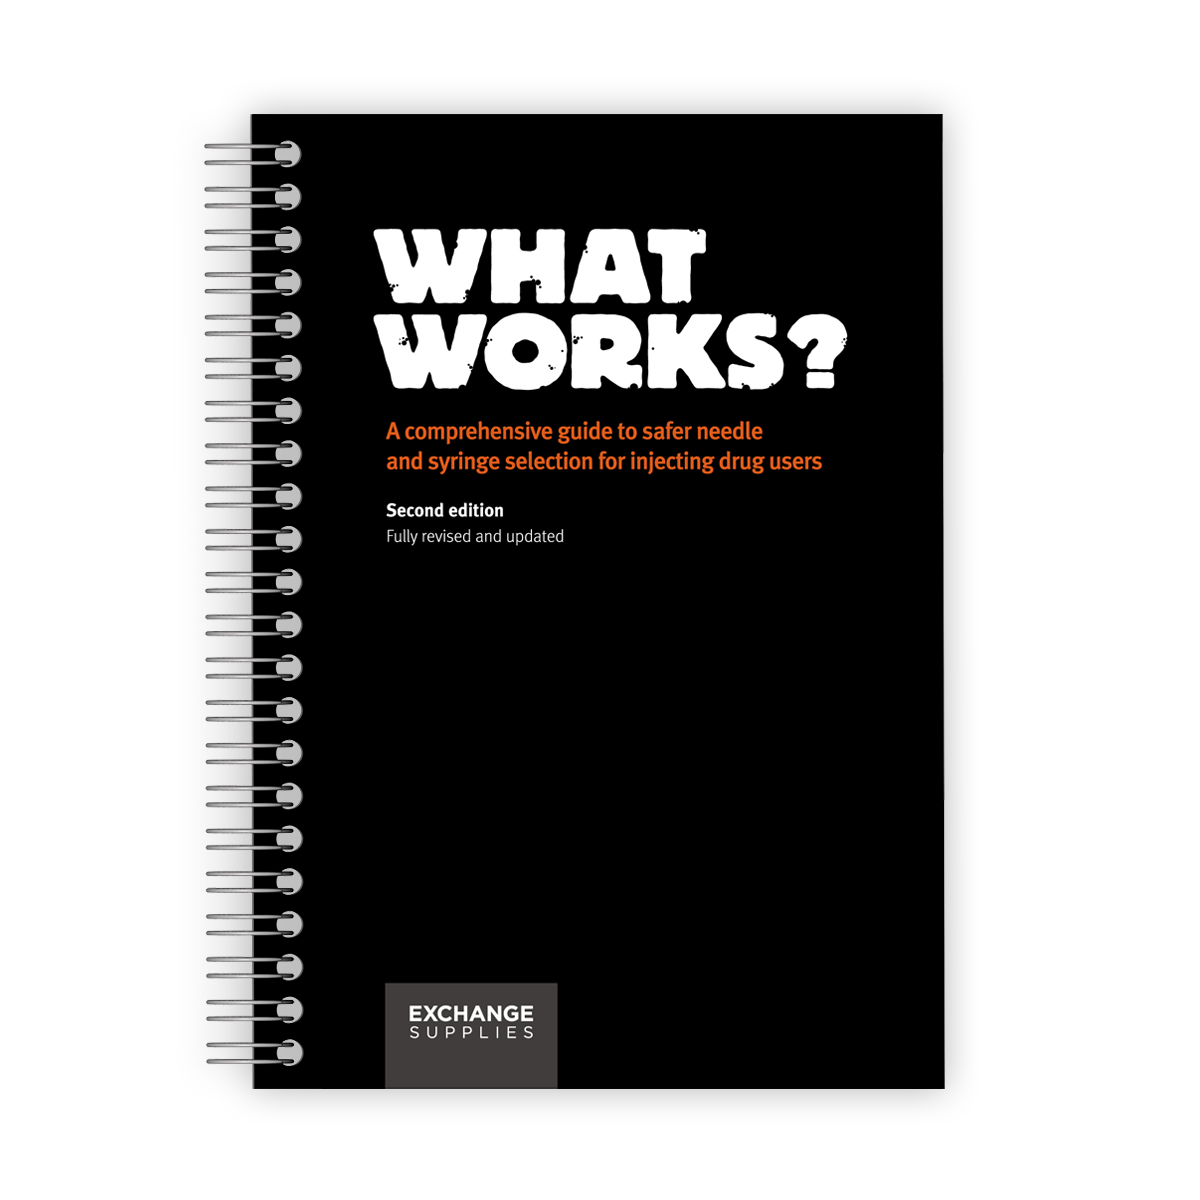 'What Works?' - A guide to injecting equipment (2nd Edition)